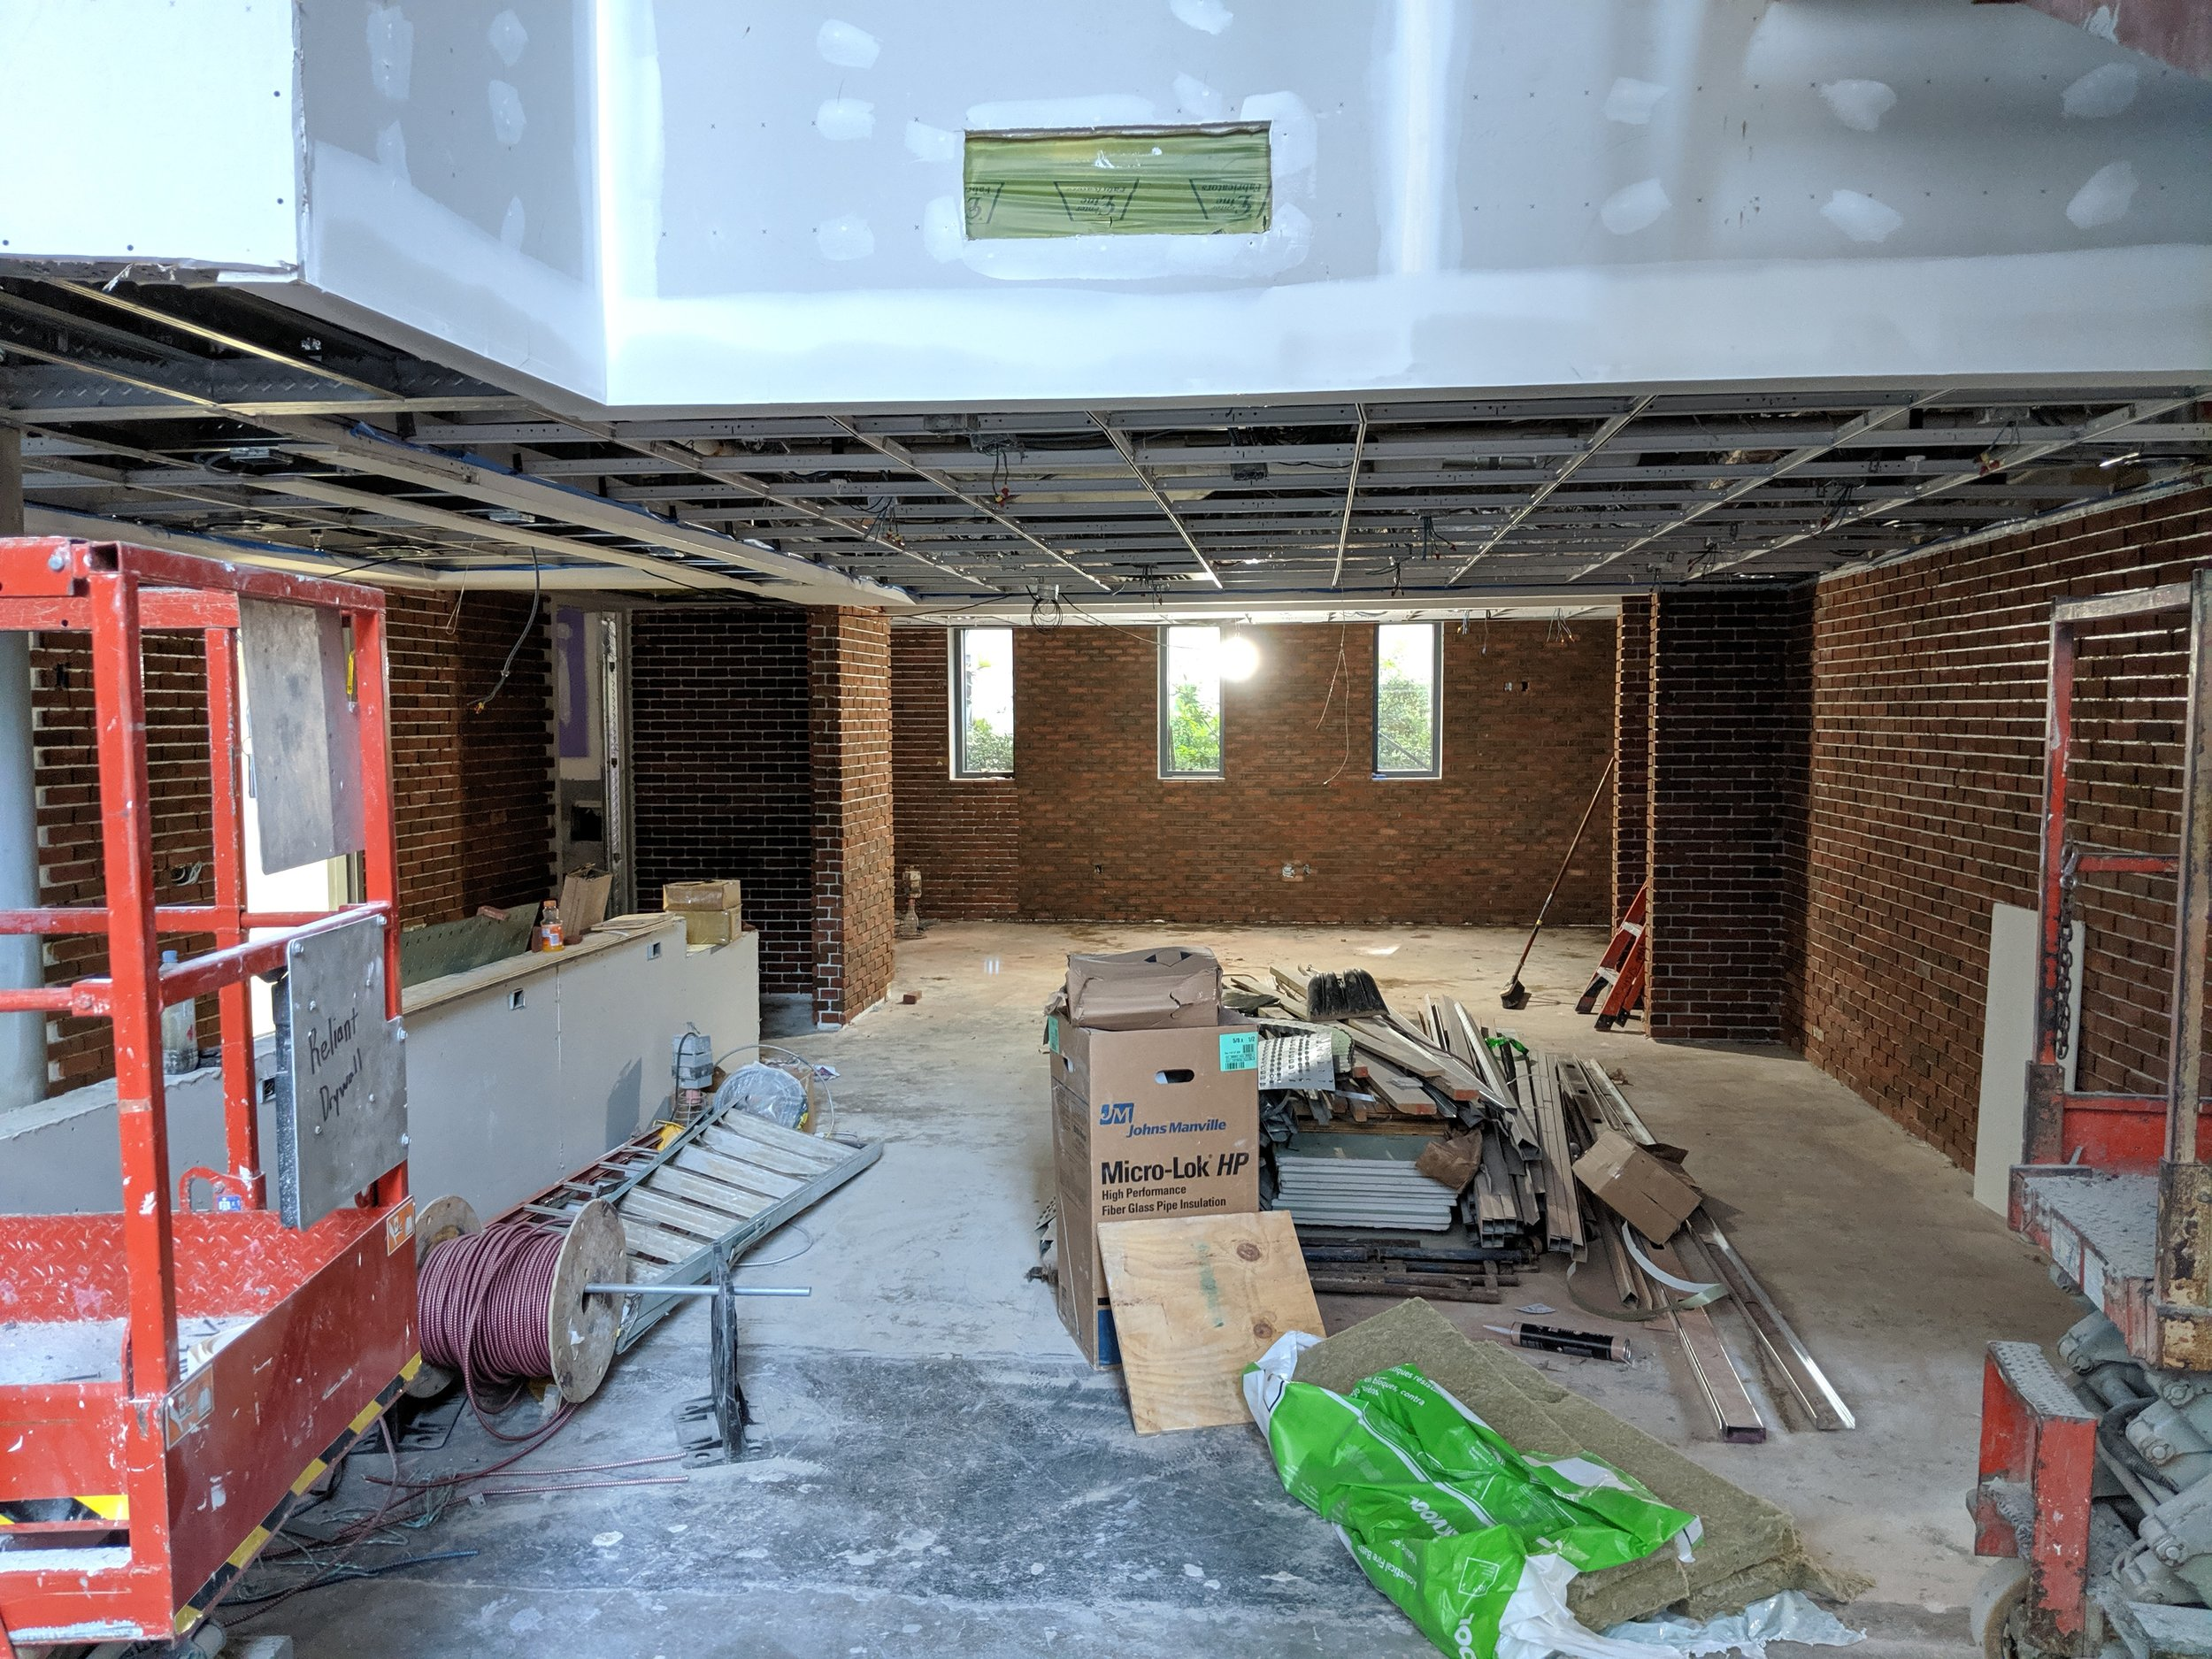 June 2019  - Brick will be featured throughout the theatre and lobby, as you see here. Where our Patrons Lounge used to be is now an open space with additional seating for patrons to enjoy a drink or food from our café before and after performances.